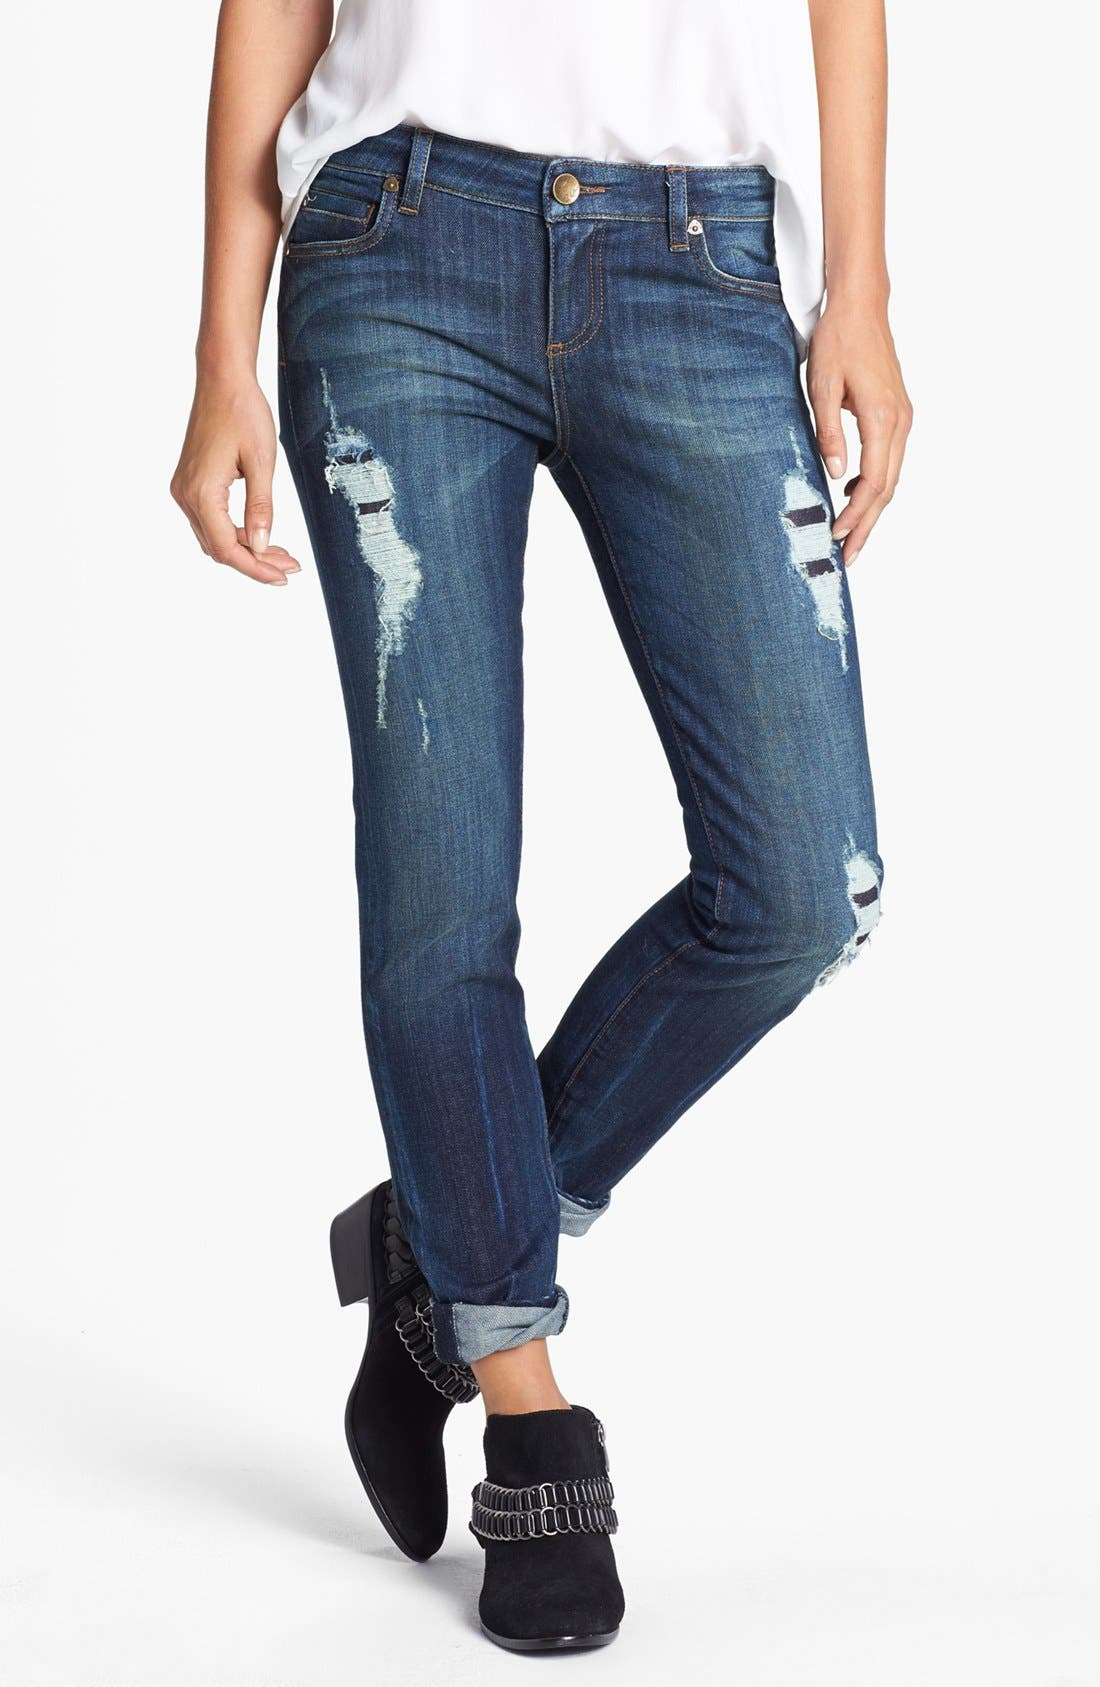 Main Image - KUT from the Kloth 'Mia' Destructed Skinny Jeans (Admissible)